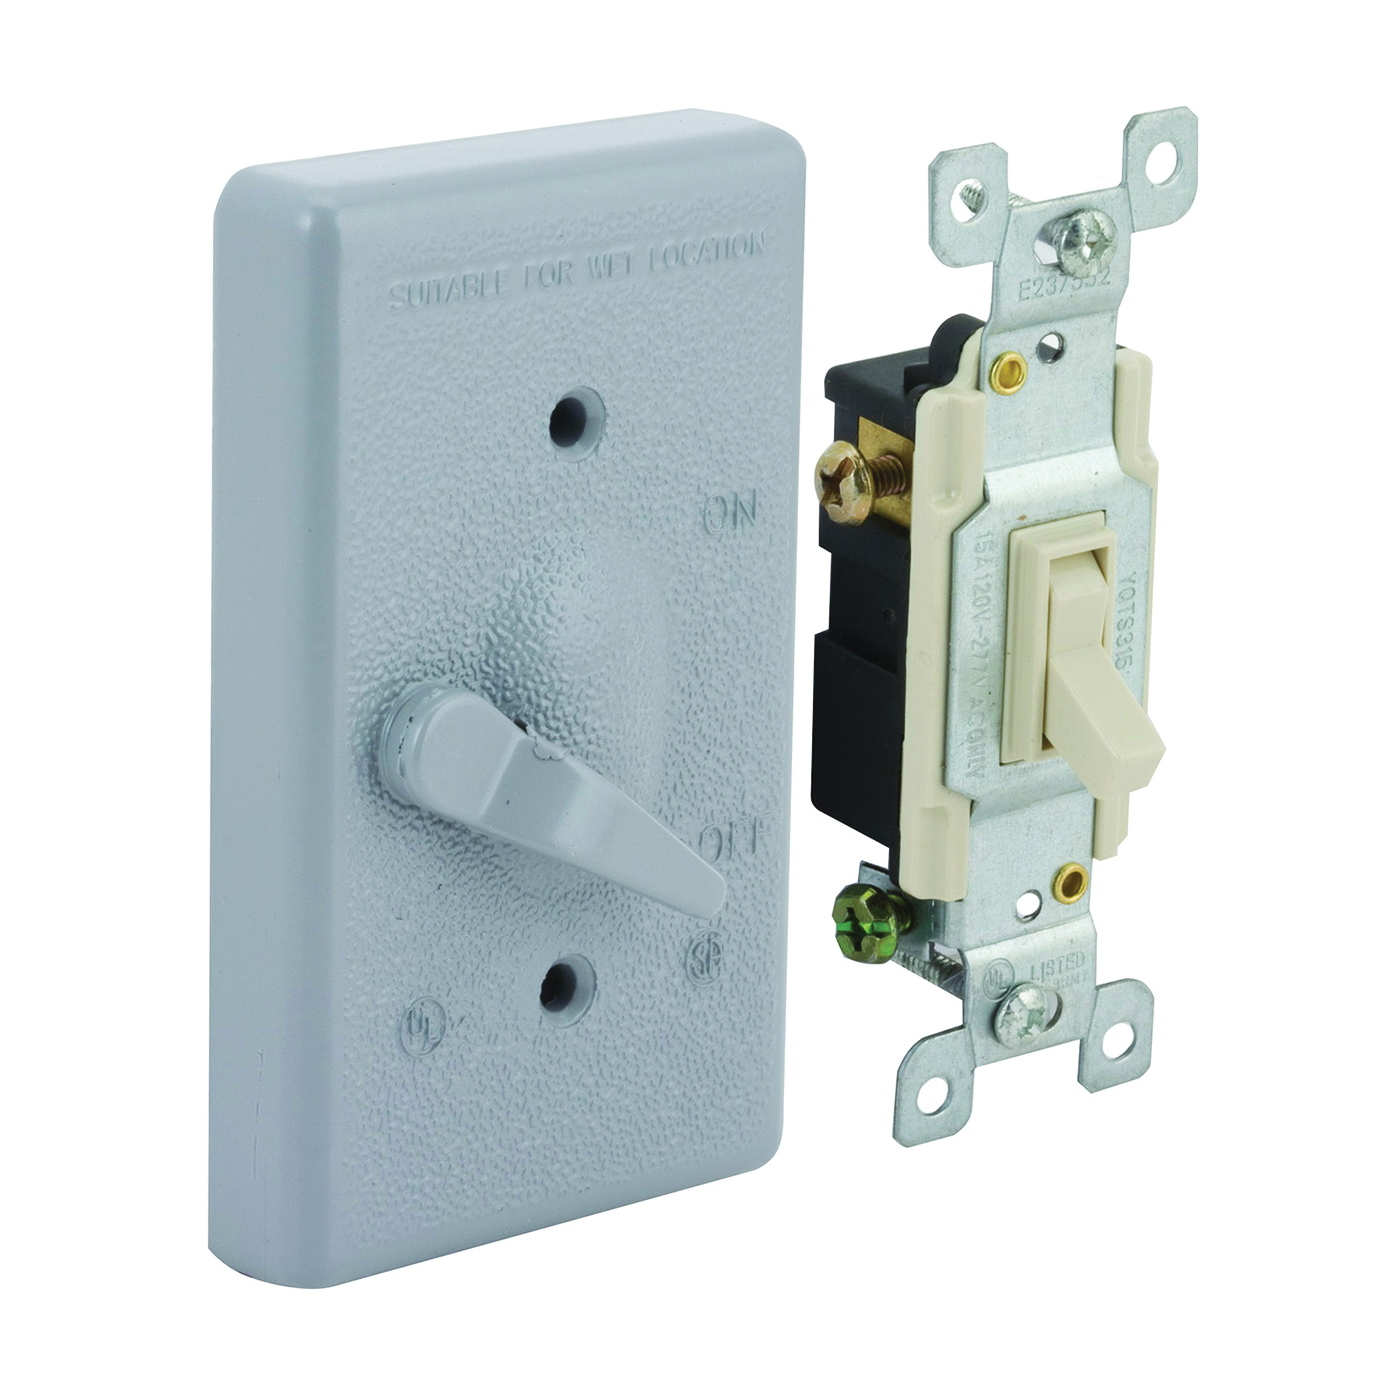 Picture of HUBBELL 5141-5 Toggle Cover, 4-39/64 in L, 2-53/64 in W, Metal, Gray, Powder-Coated